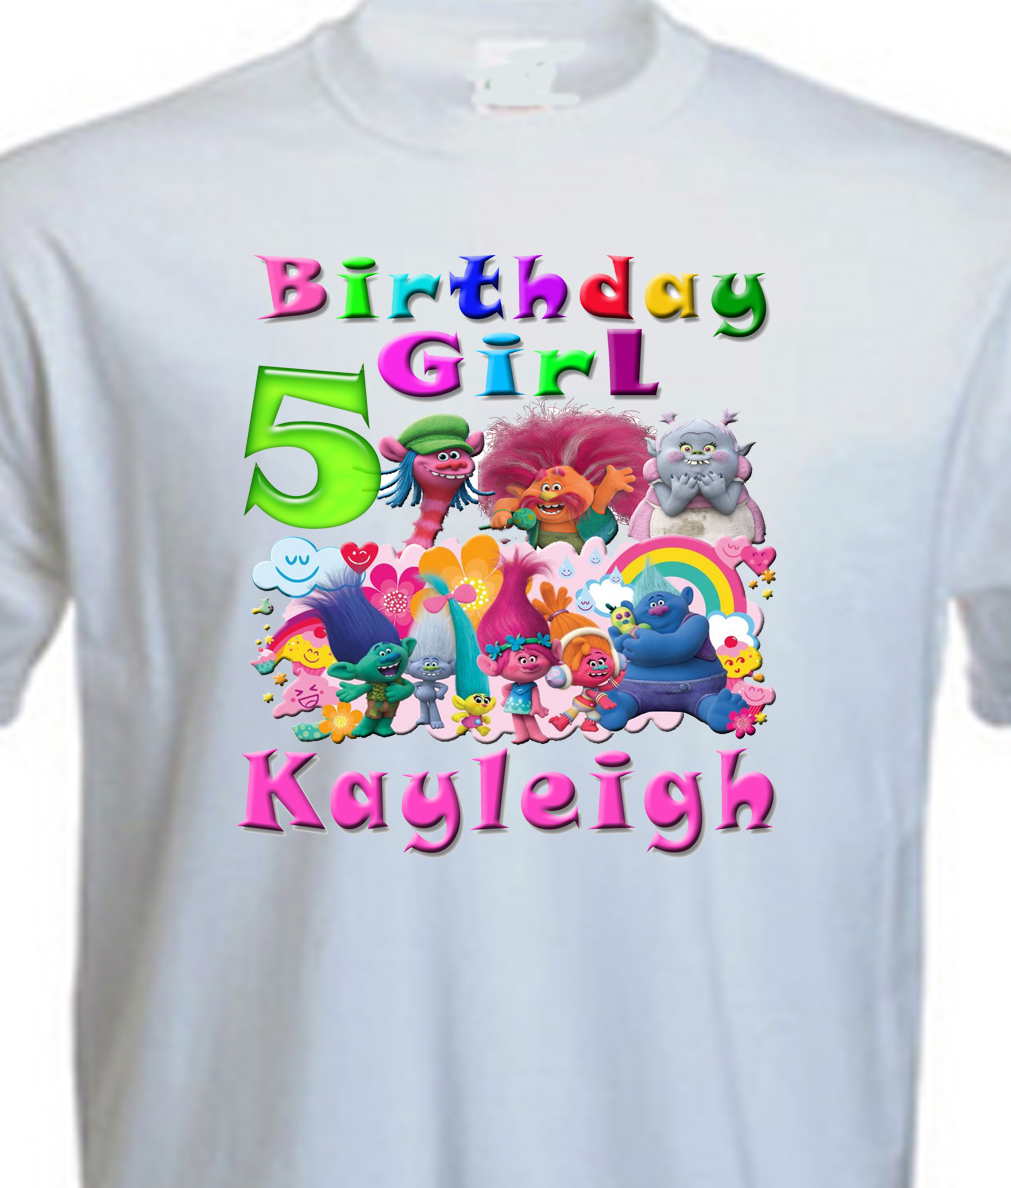 Personalized Birthday Shirts For Adults Summer Cook